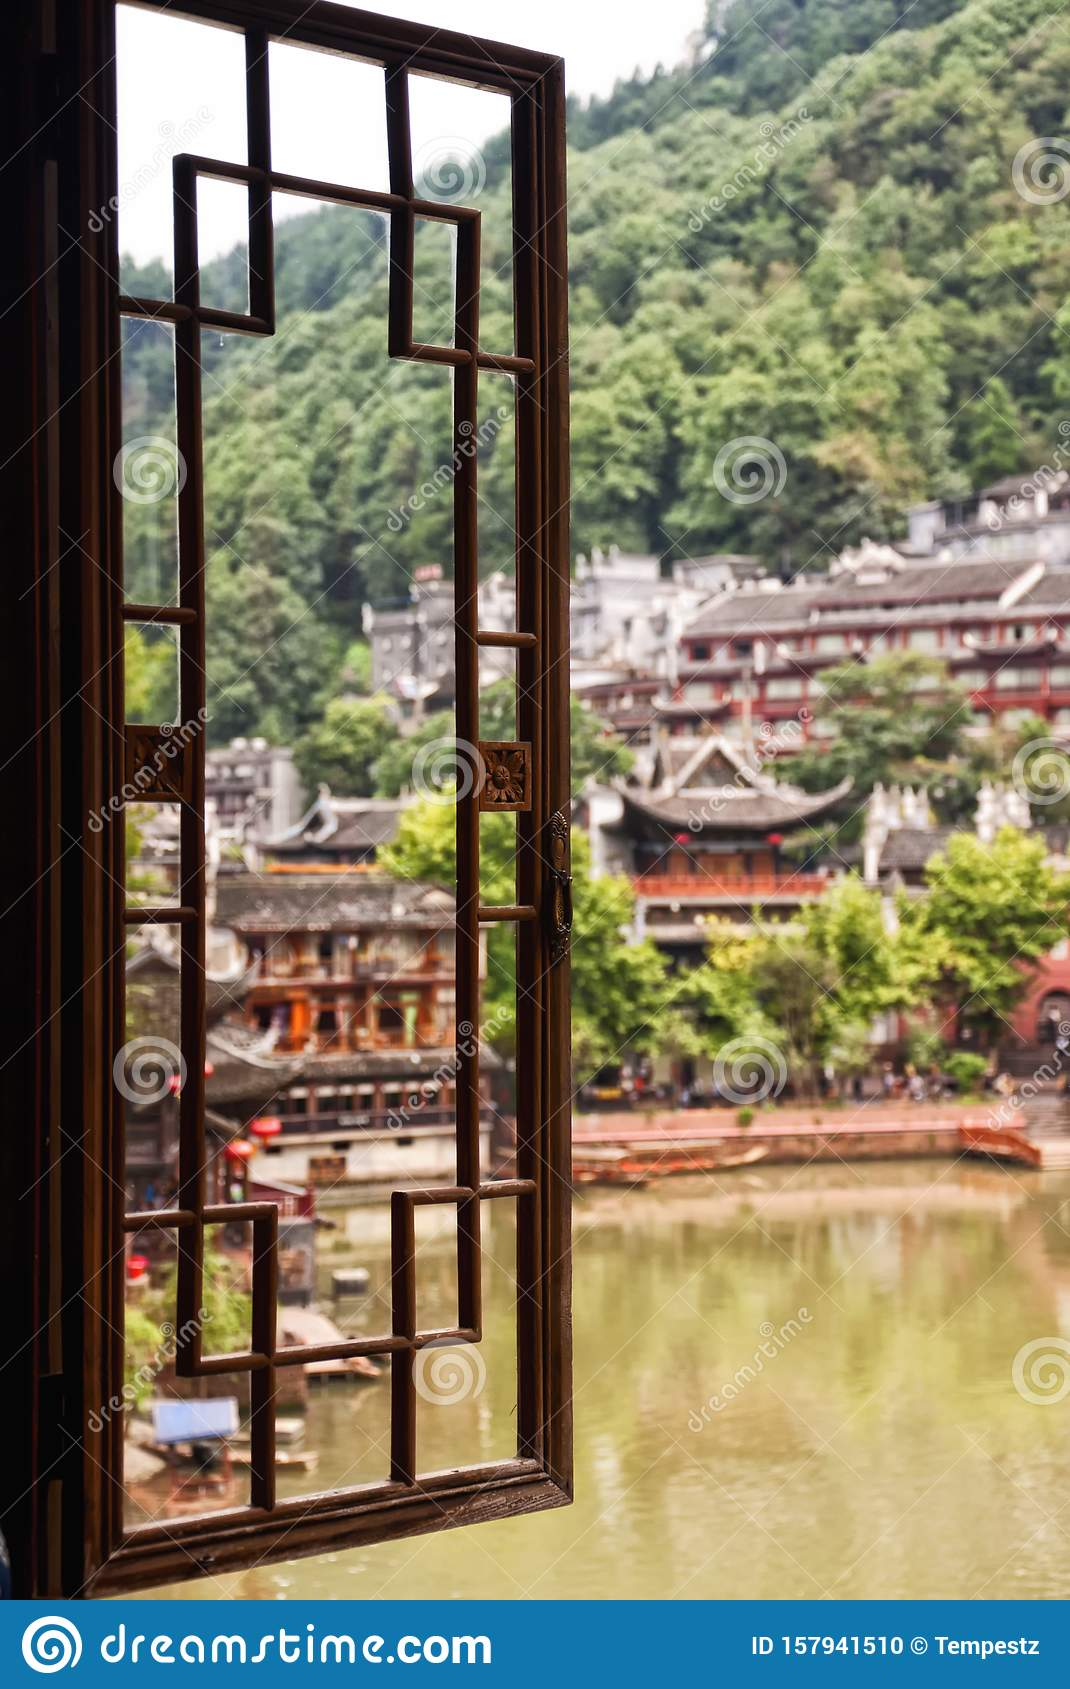 Window view of Fenghuang Village